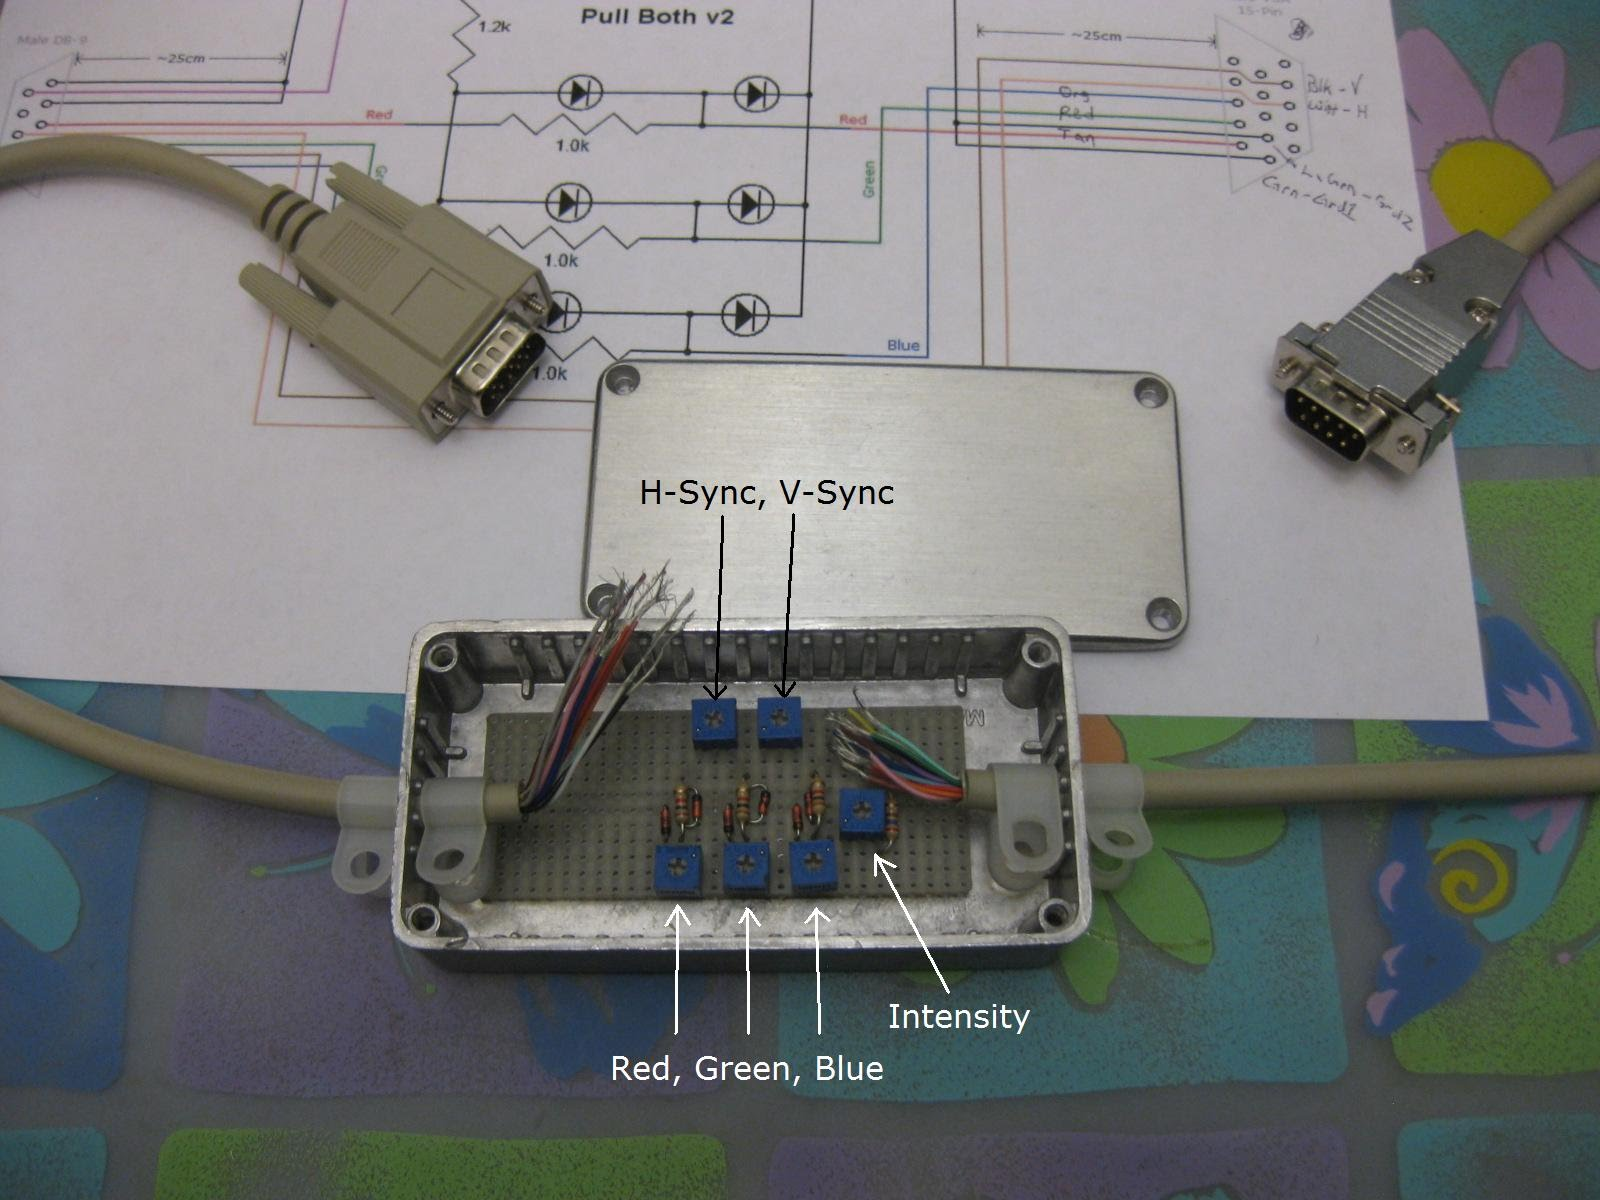 vga to component wiring diagram dish lnb cable rgbi h2obsession